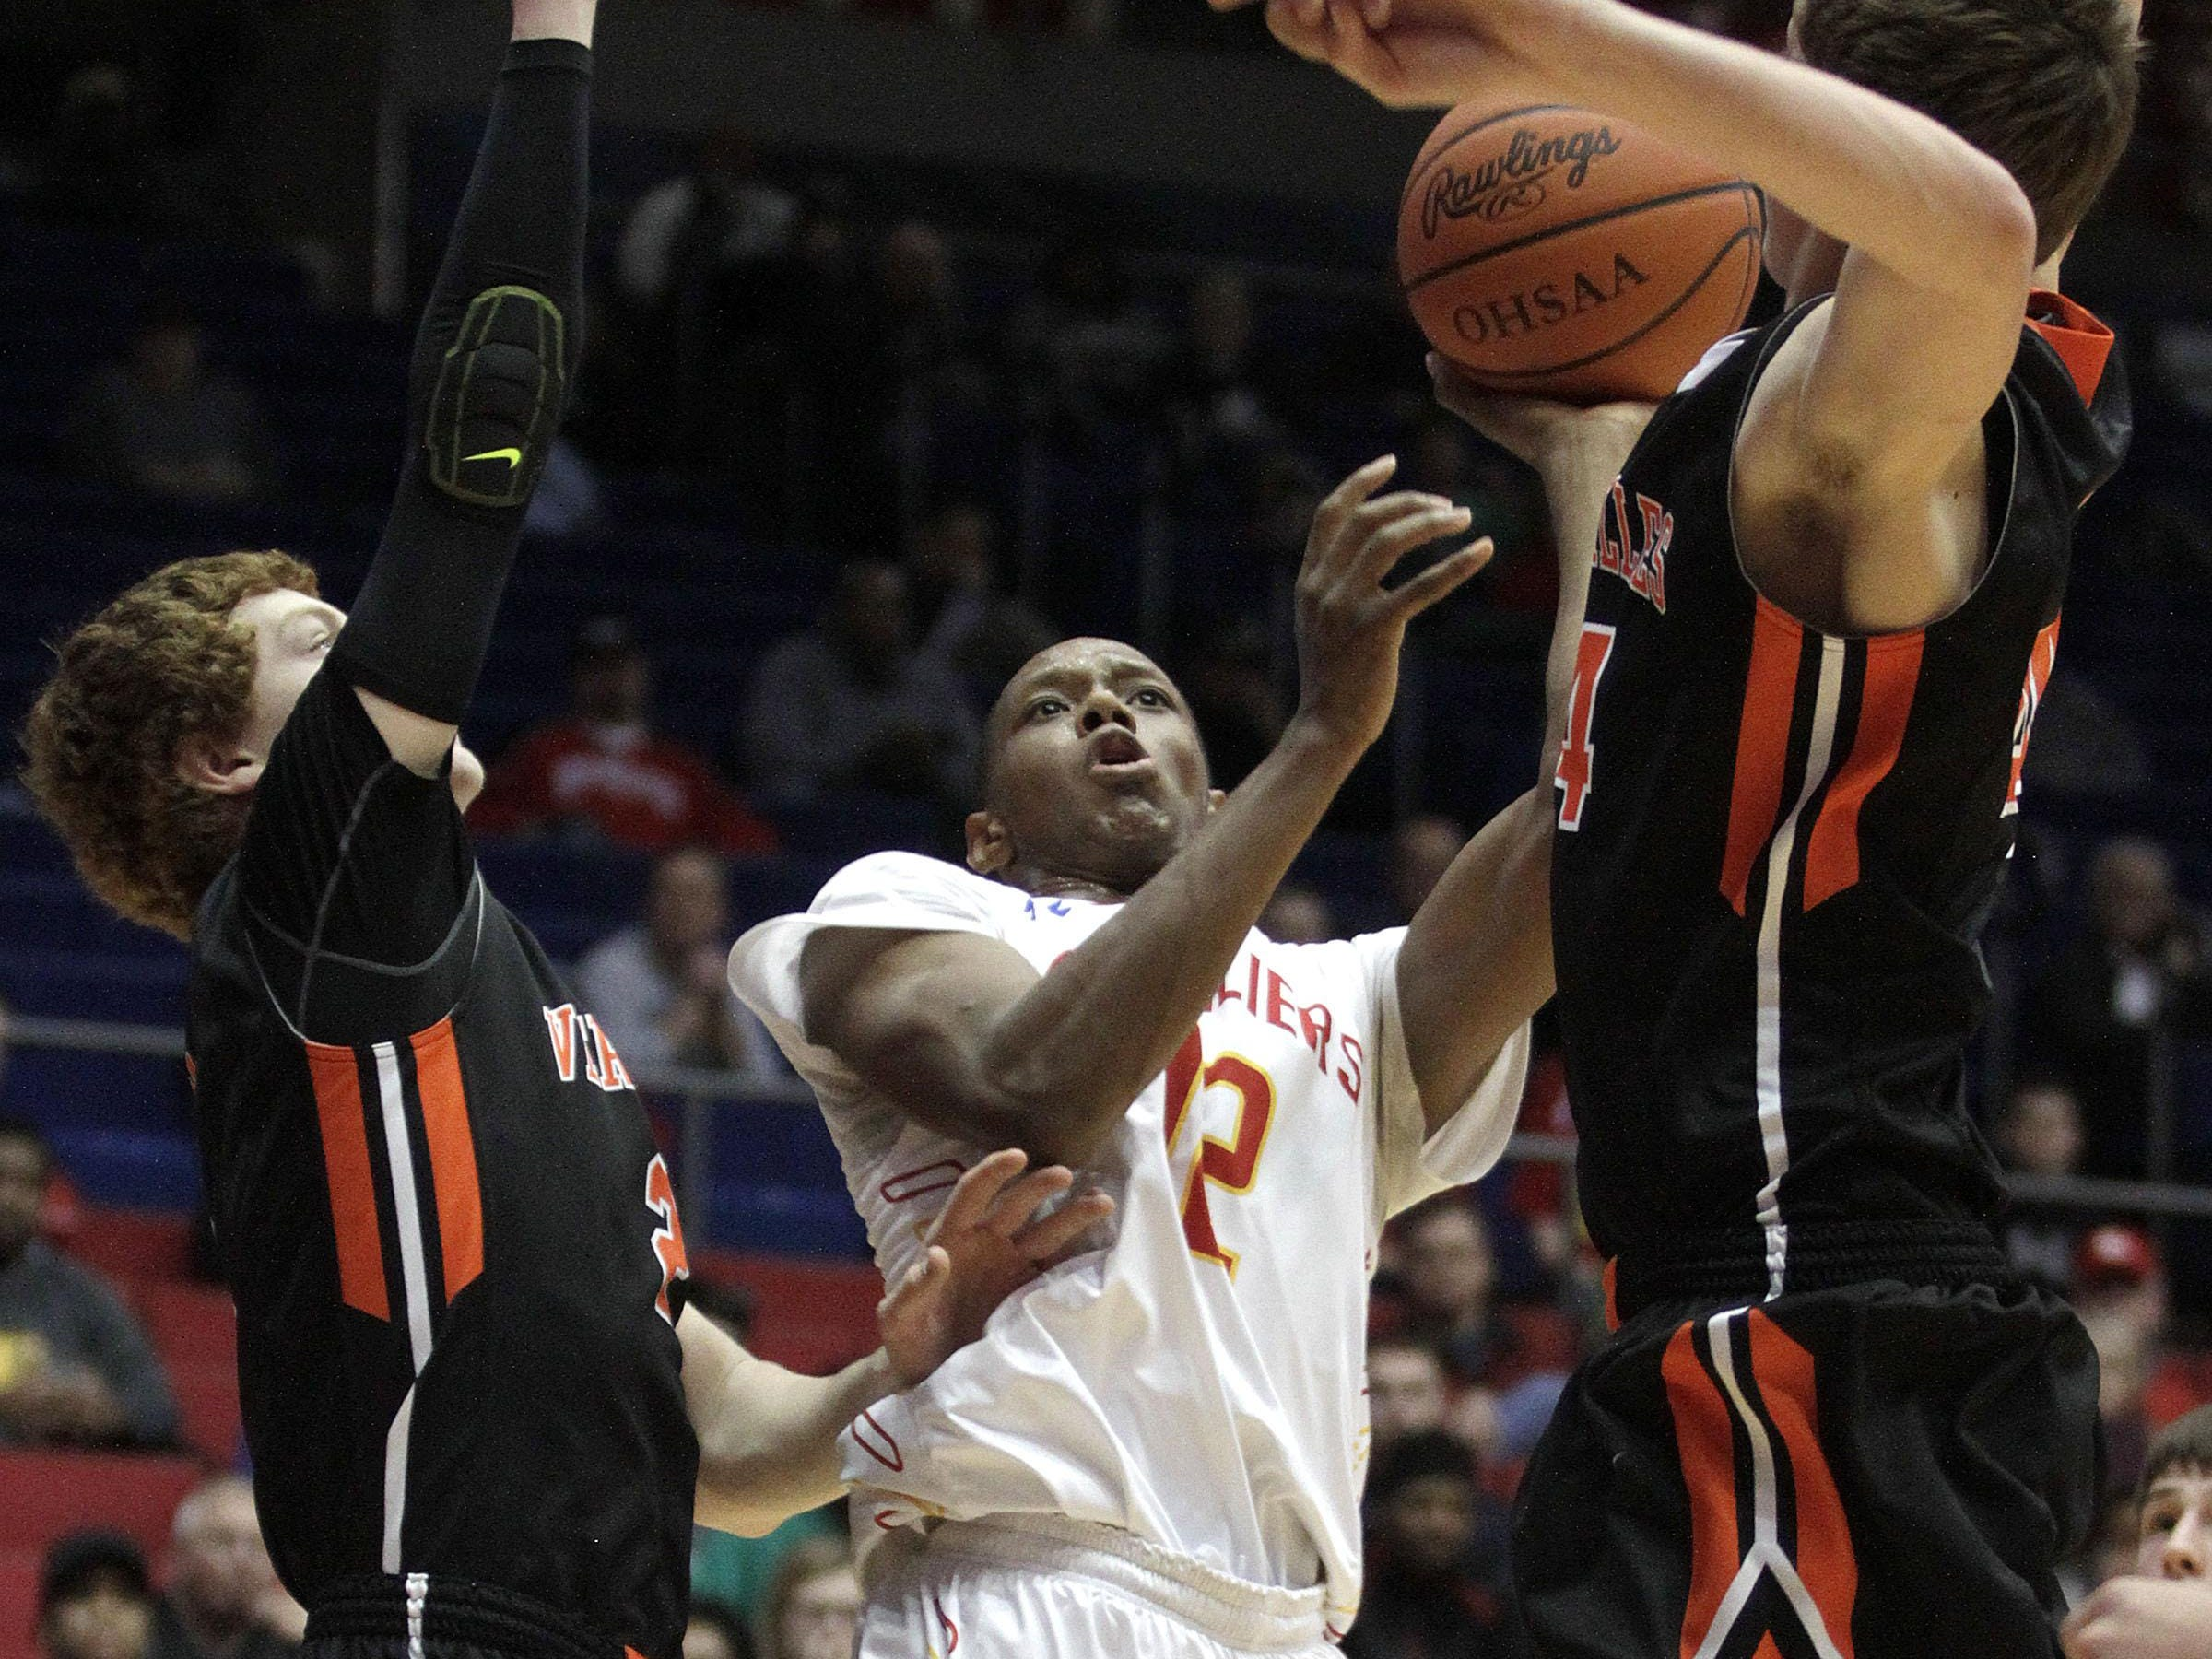 Jordan Gaines of Purcell Marian throws up a shot against Versailles in the Division III district title game at the University of Dayton.